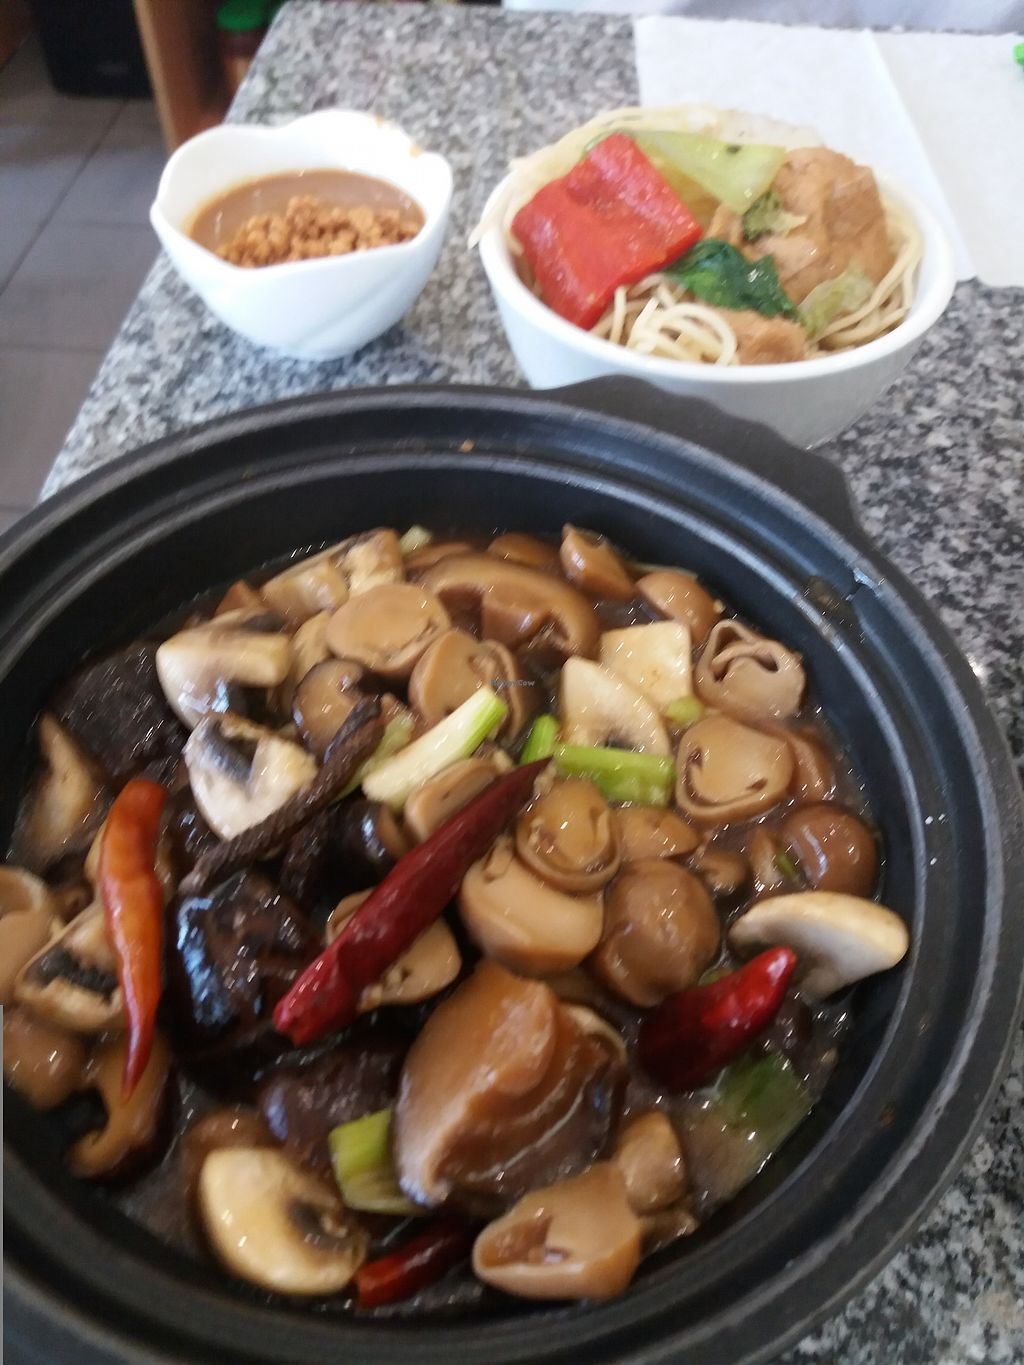 """Photo of Loving Hut - Bankstown  by <a href=""""/members/profile/veganvirtues"""">veganvirtues</a> <br/>Mushrooms in pot <br/> November 10, 2017  - <a href='/contact/abuse/image/19630/323764'>Report</a>"""